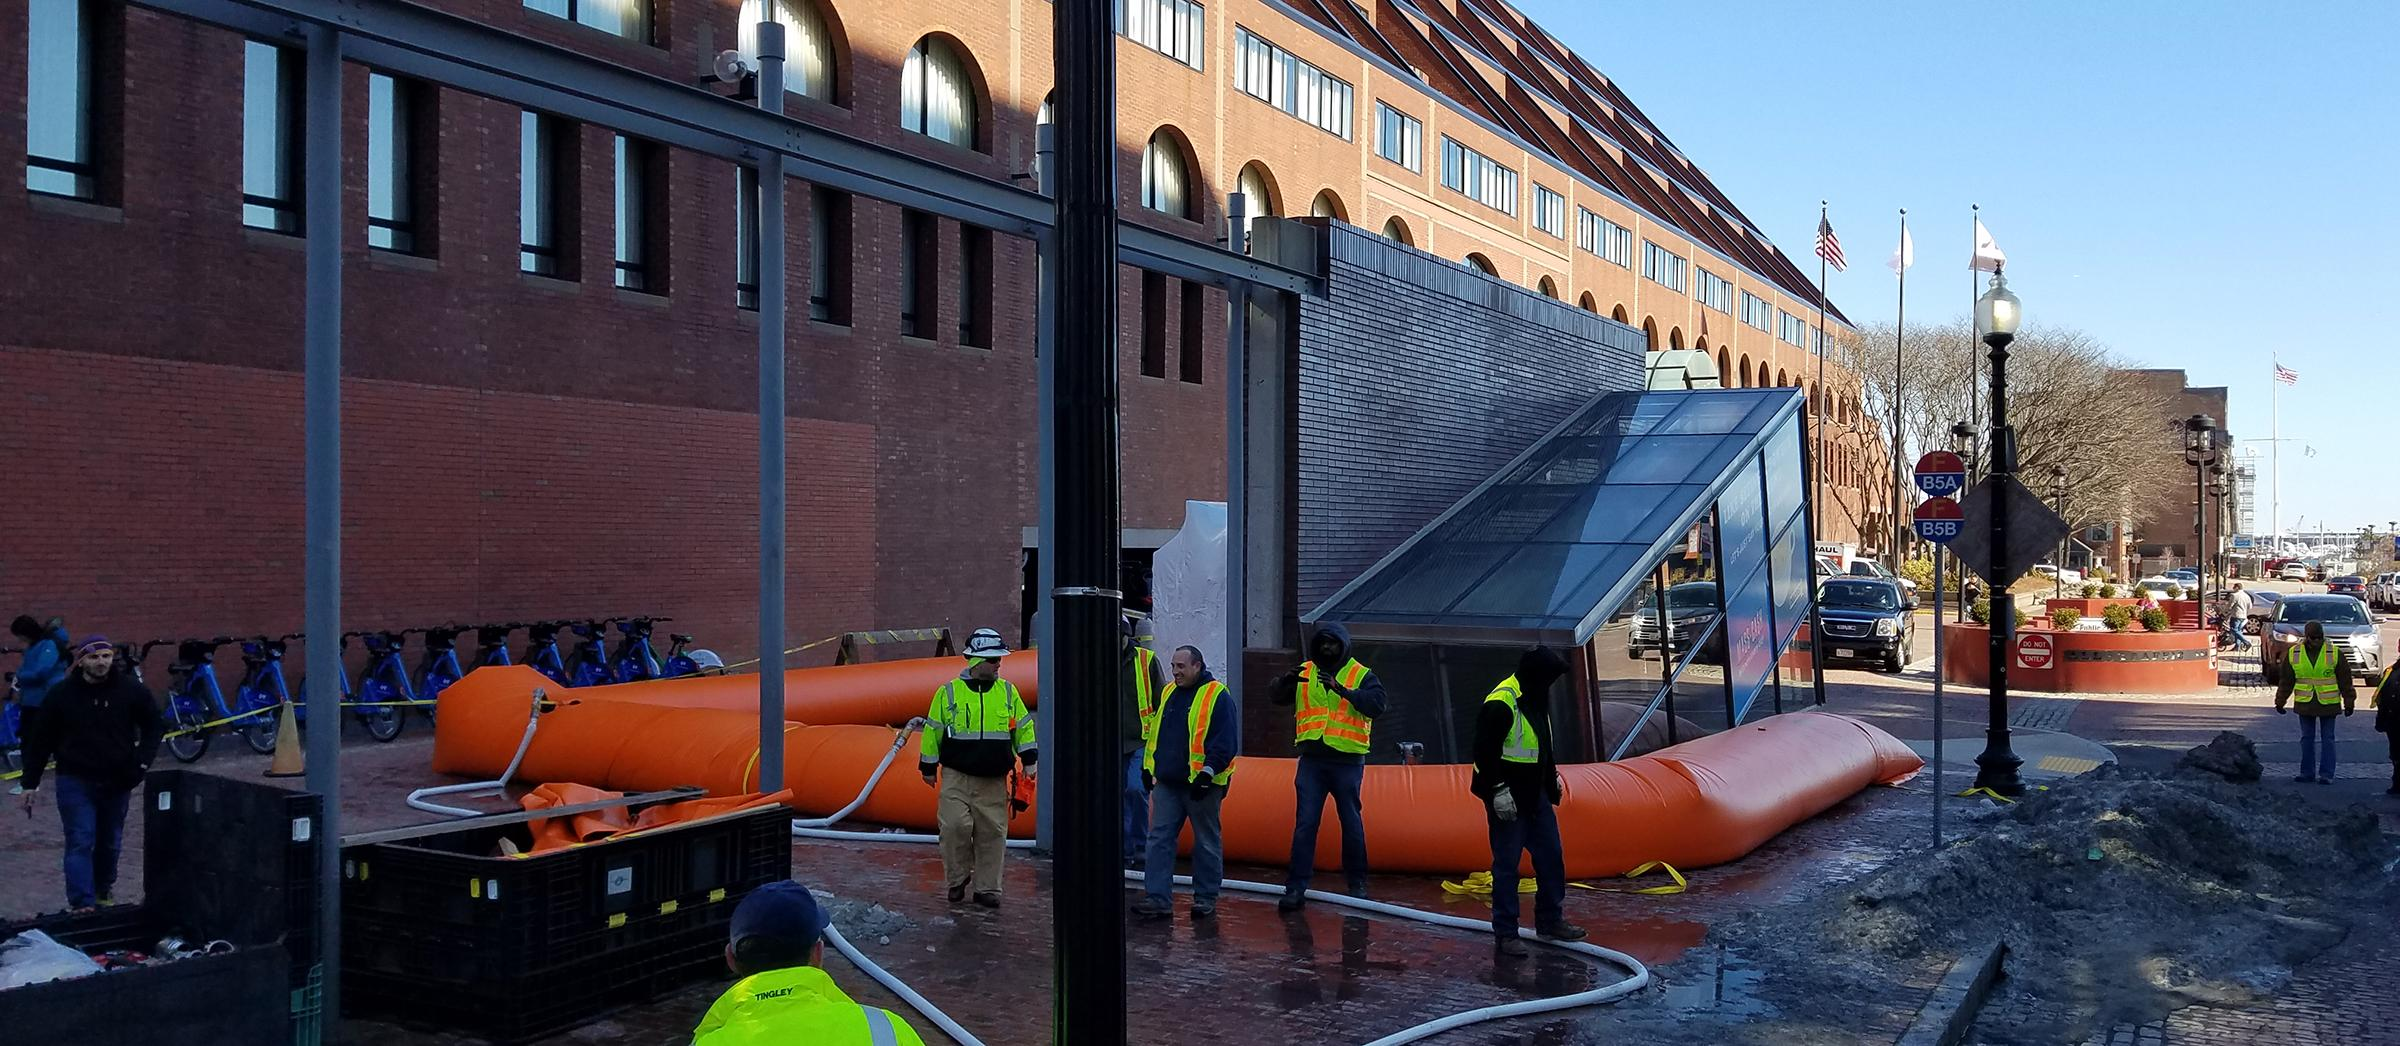 Tiger dams tested for flooding prevention at Aquarium Station in 2019